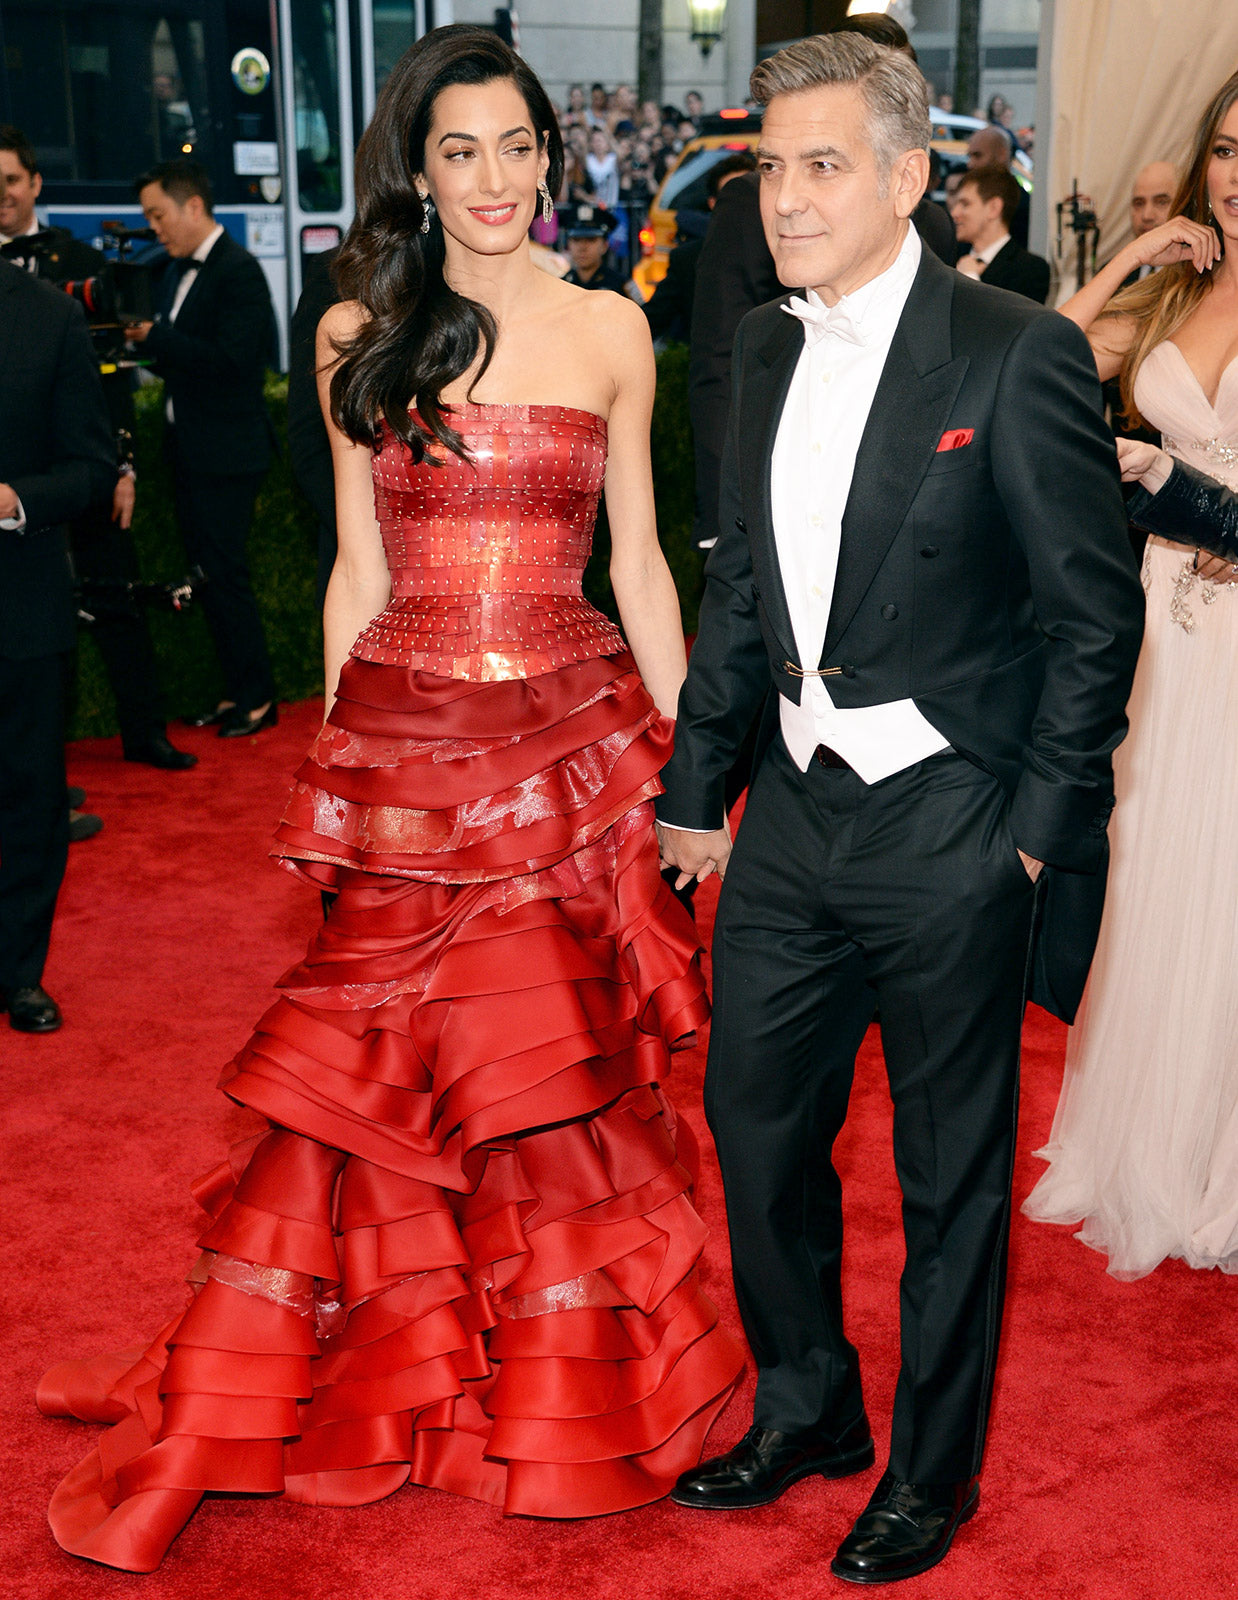 Amal Clooney in a red custom Maison Margiela Artisanal by John Galliano corset top and tiered skirt.